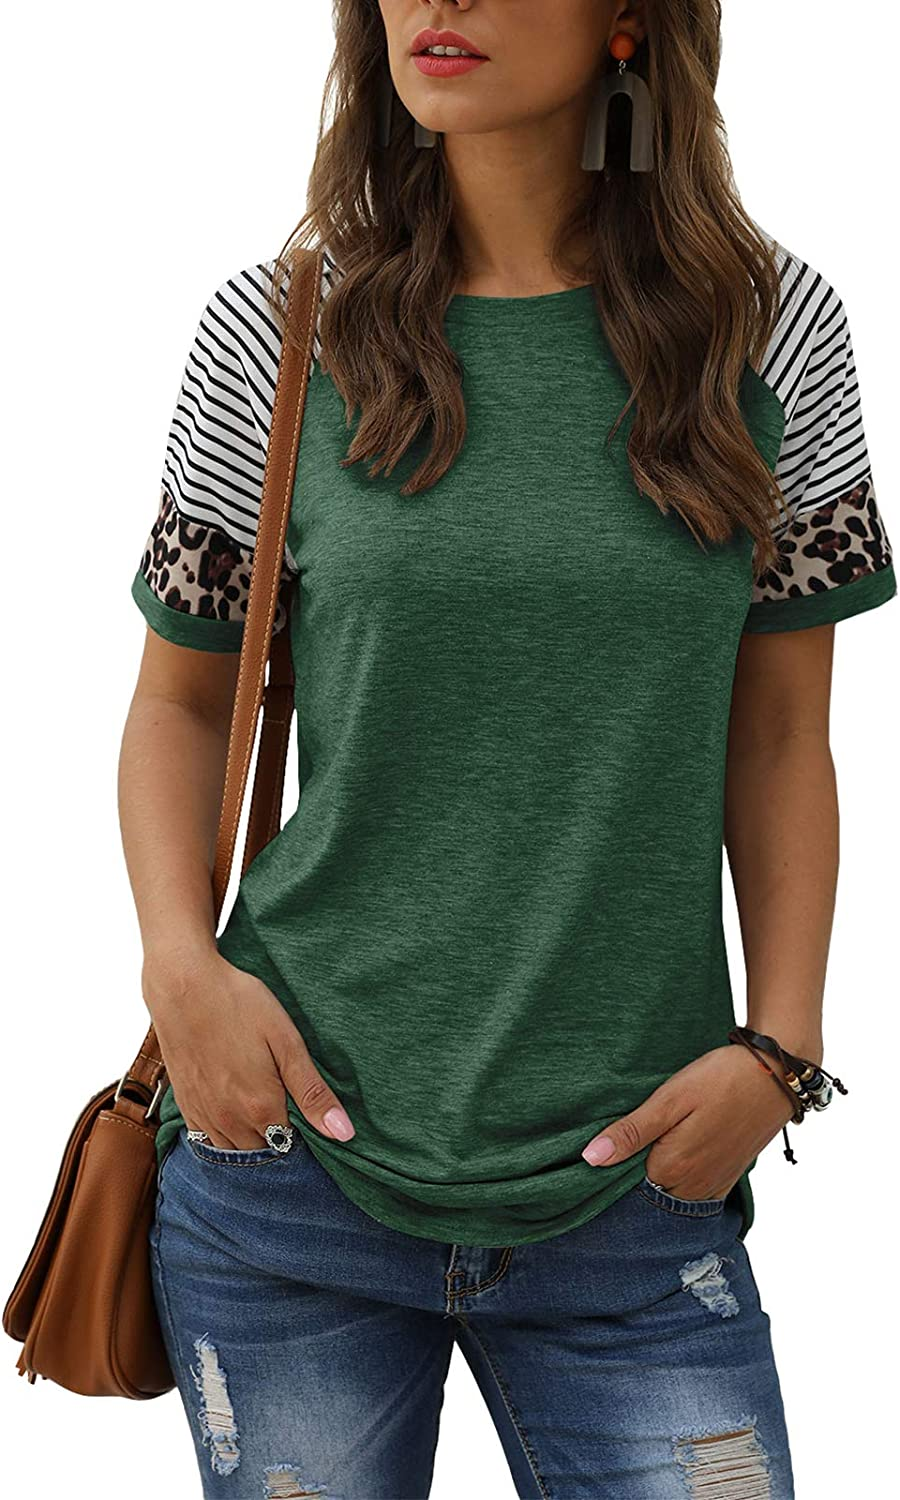 Womens Summer Tops Casual Short Sleeve Blouse T Shirts Tee Tunic